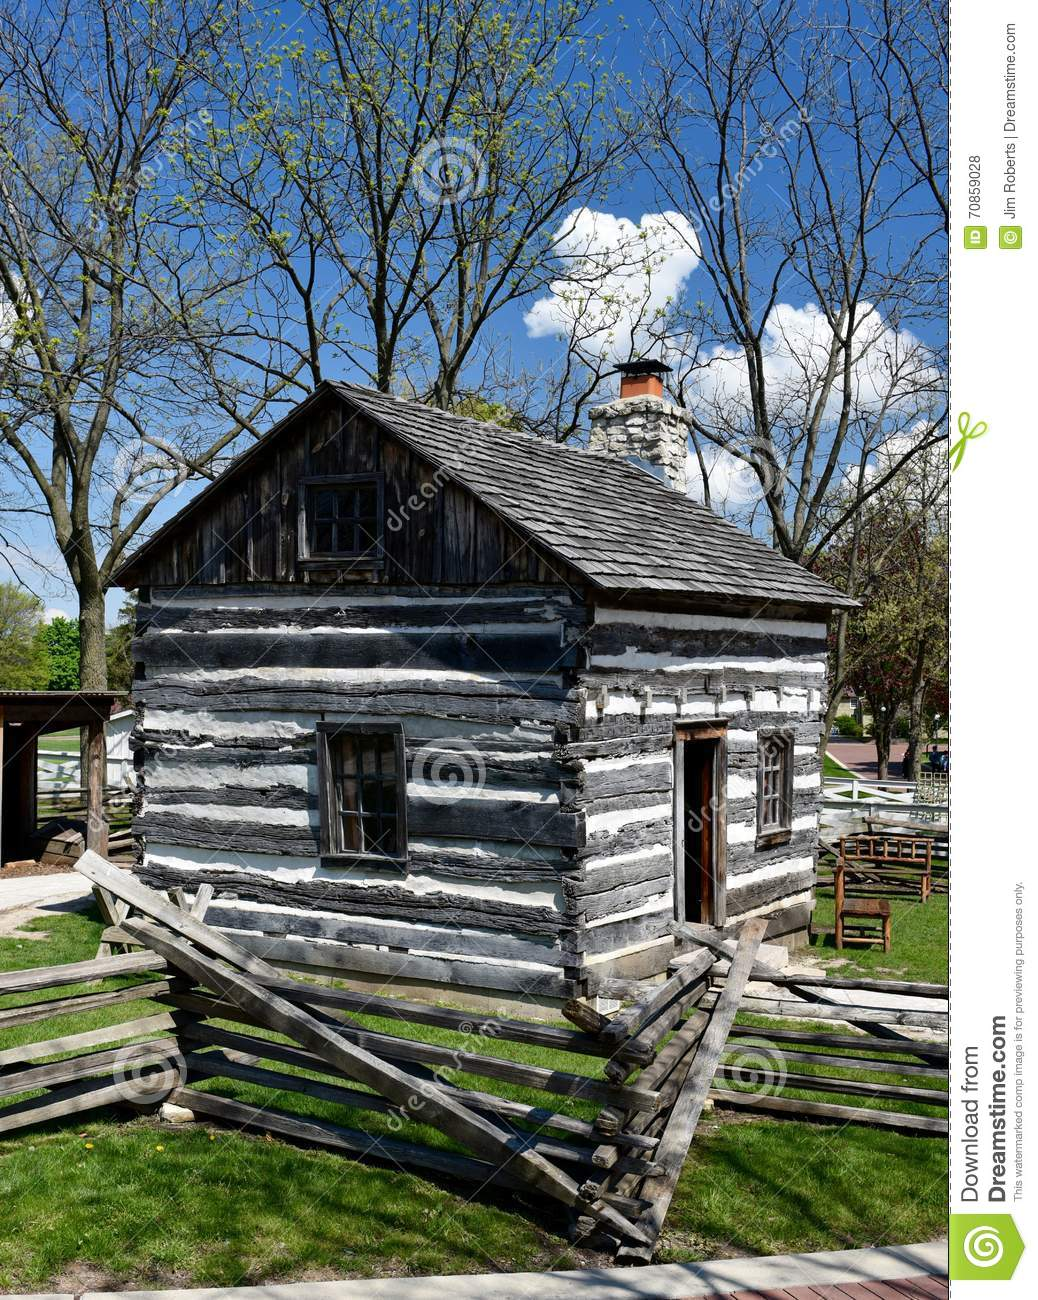 Superb img of  log house located in naperville illinois this hand sewn log cabin was with #496020 color and 1038x1300 pixels